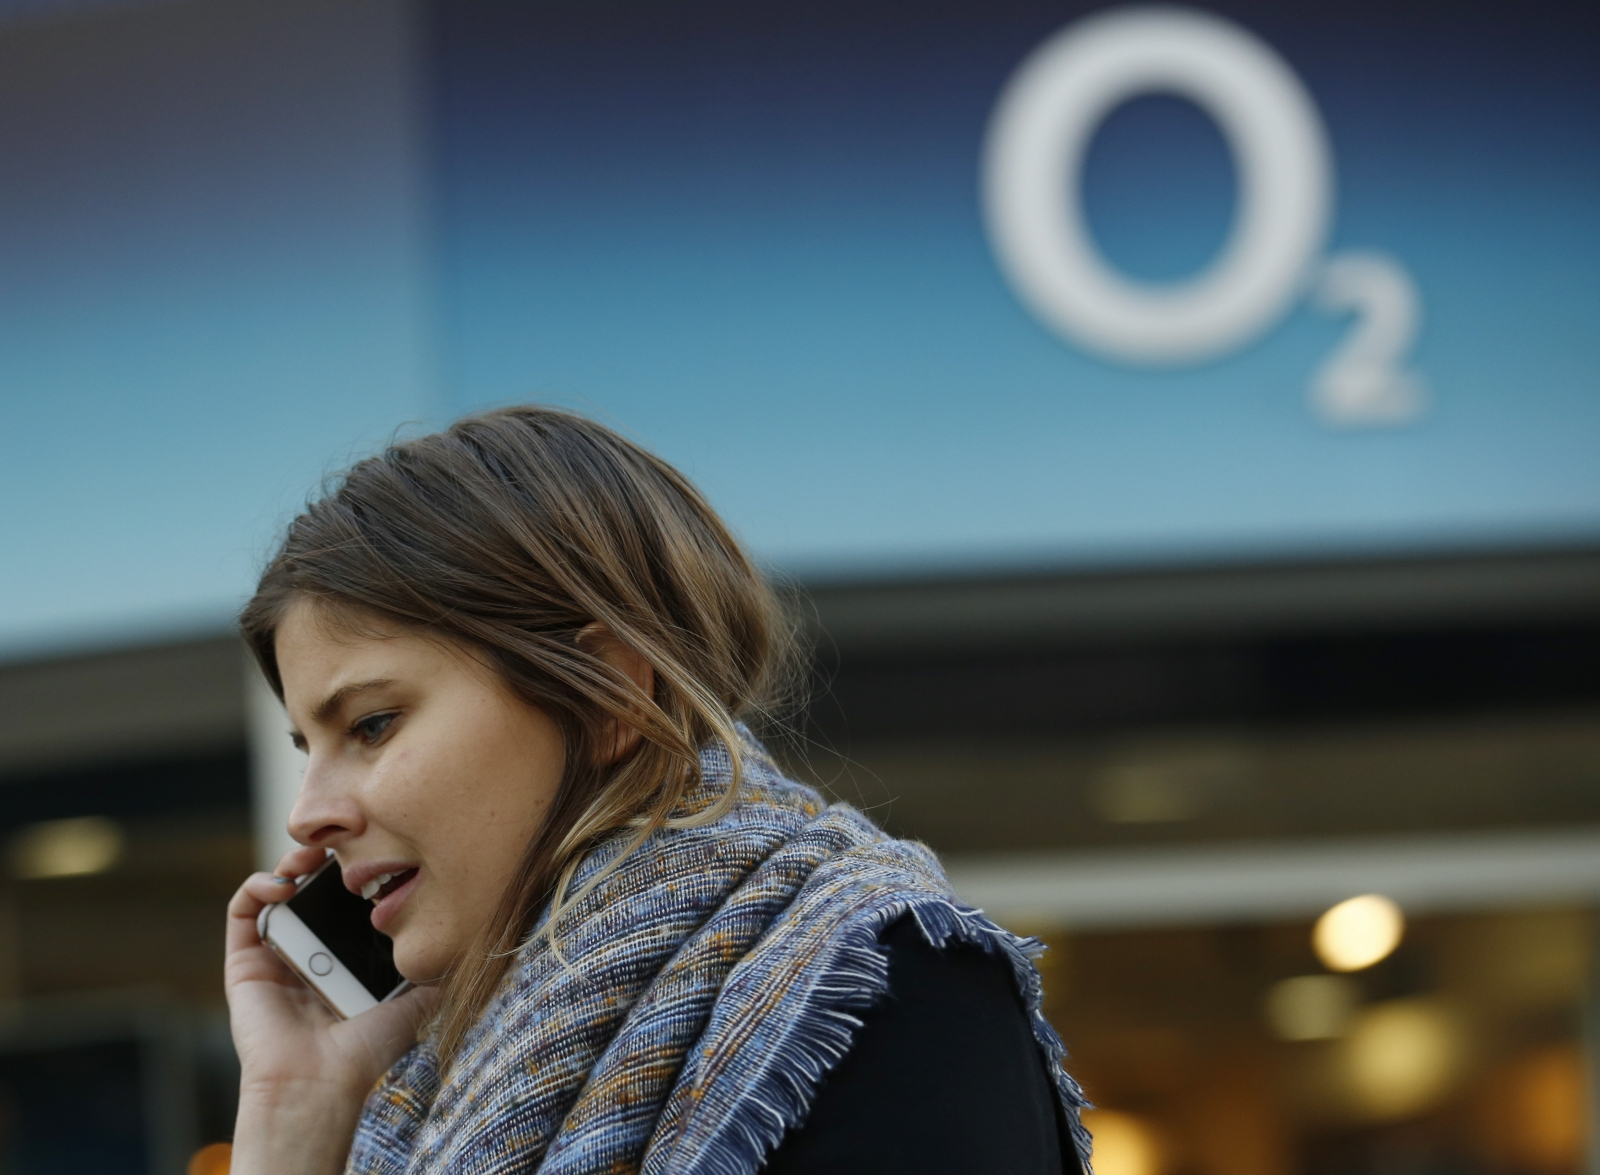 O2 sold to Three